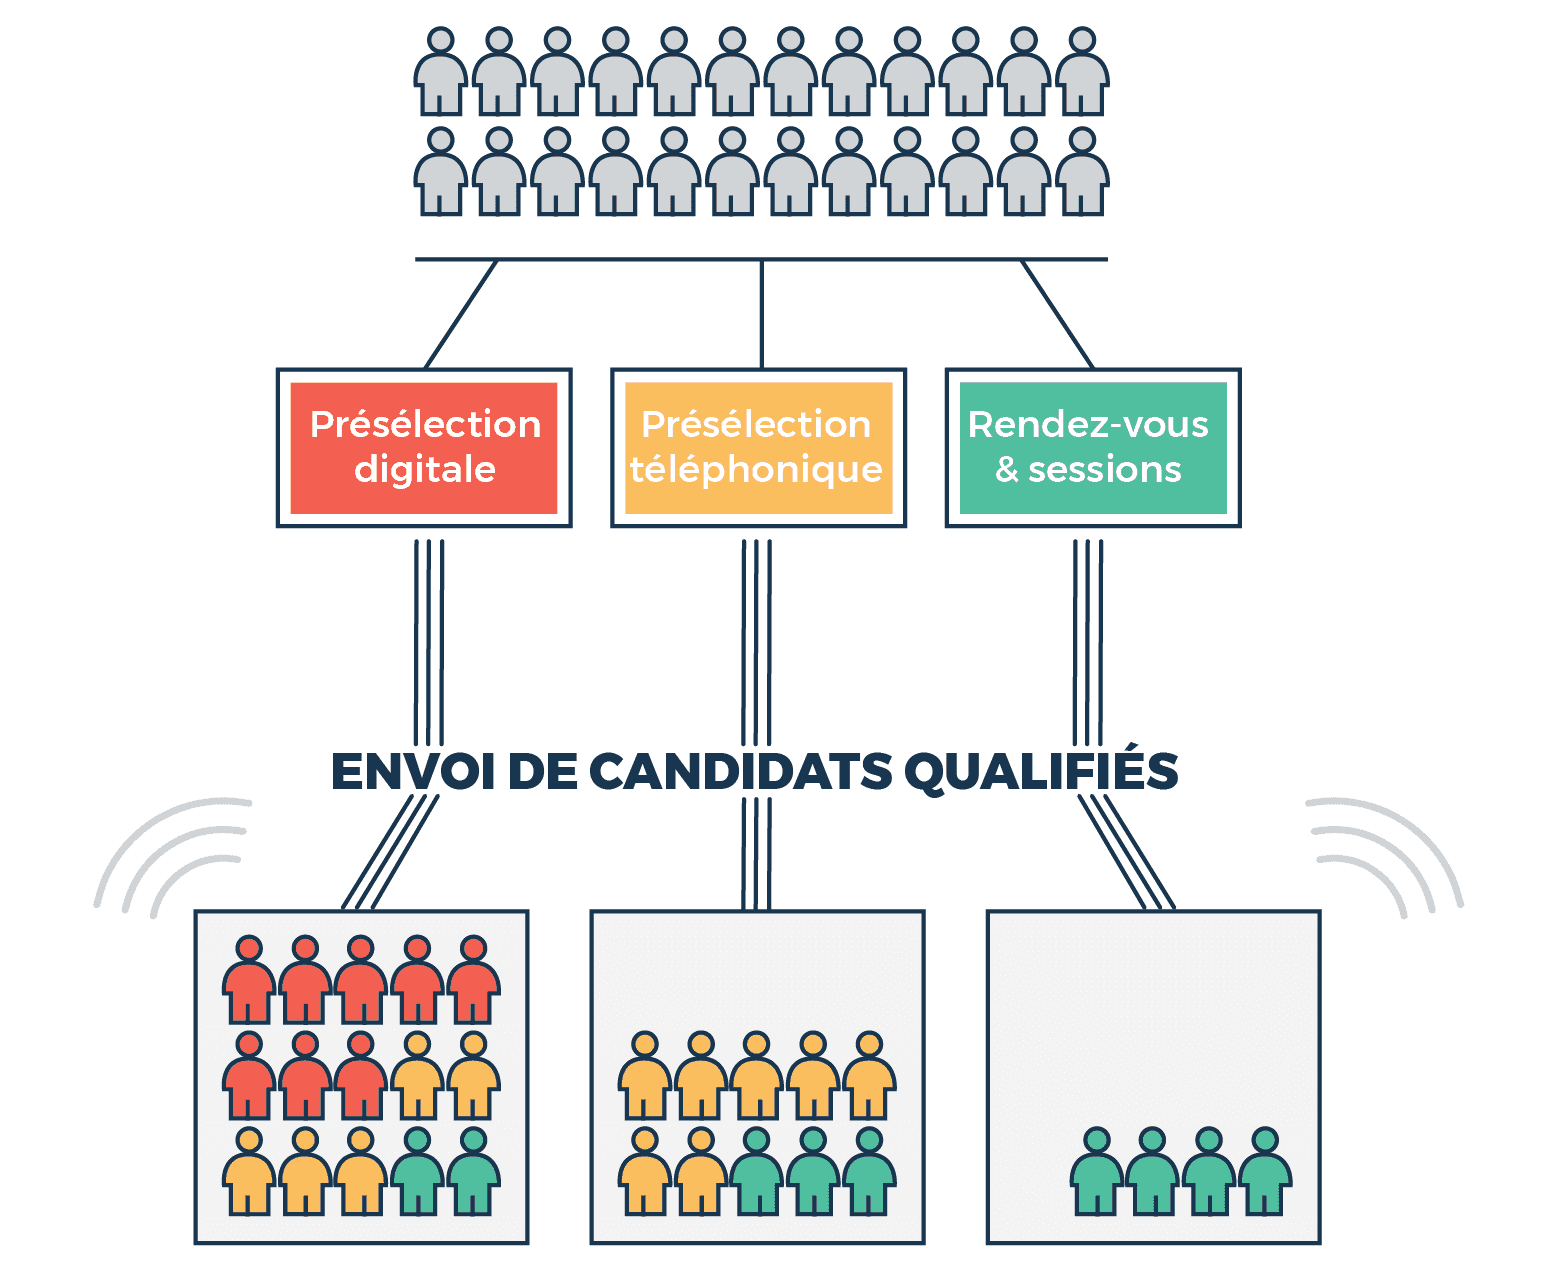 Cabinet De Recrutement Nantes Présélection De Candidats Recrutement Digital Opensourcing